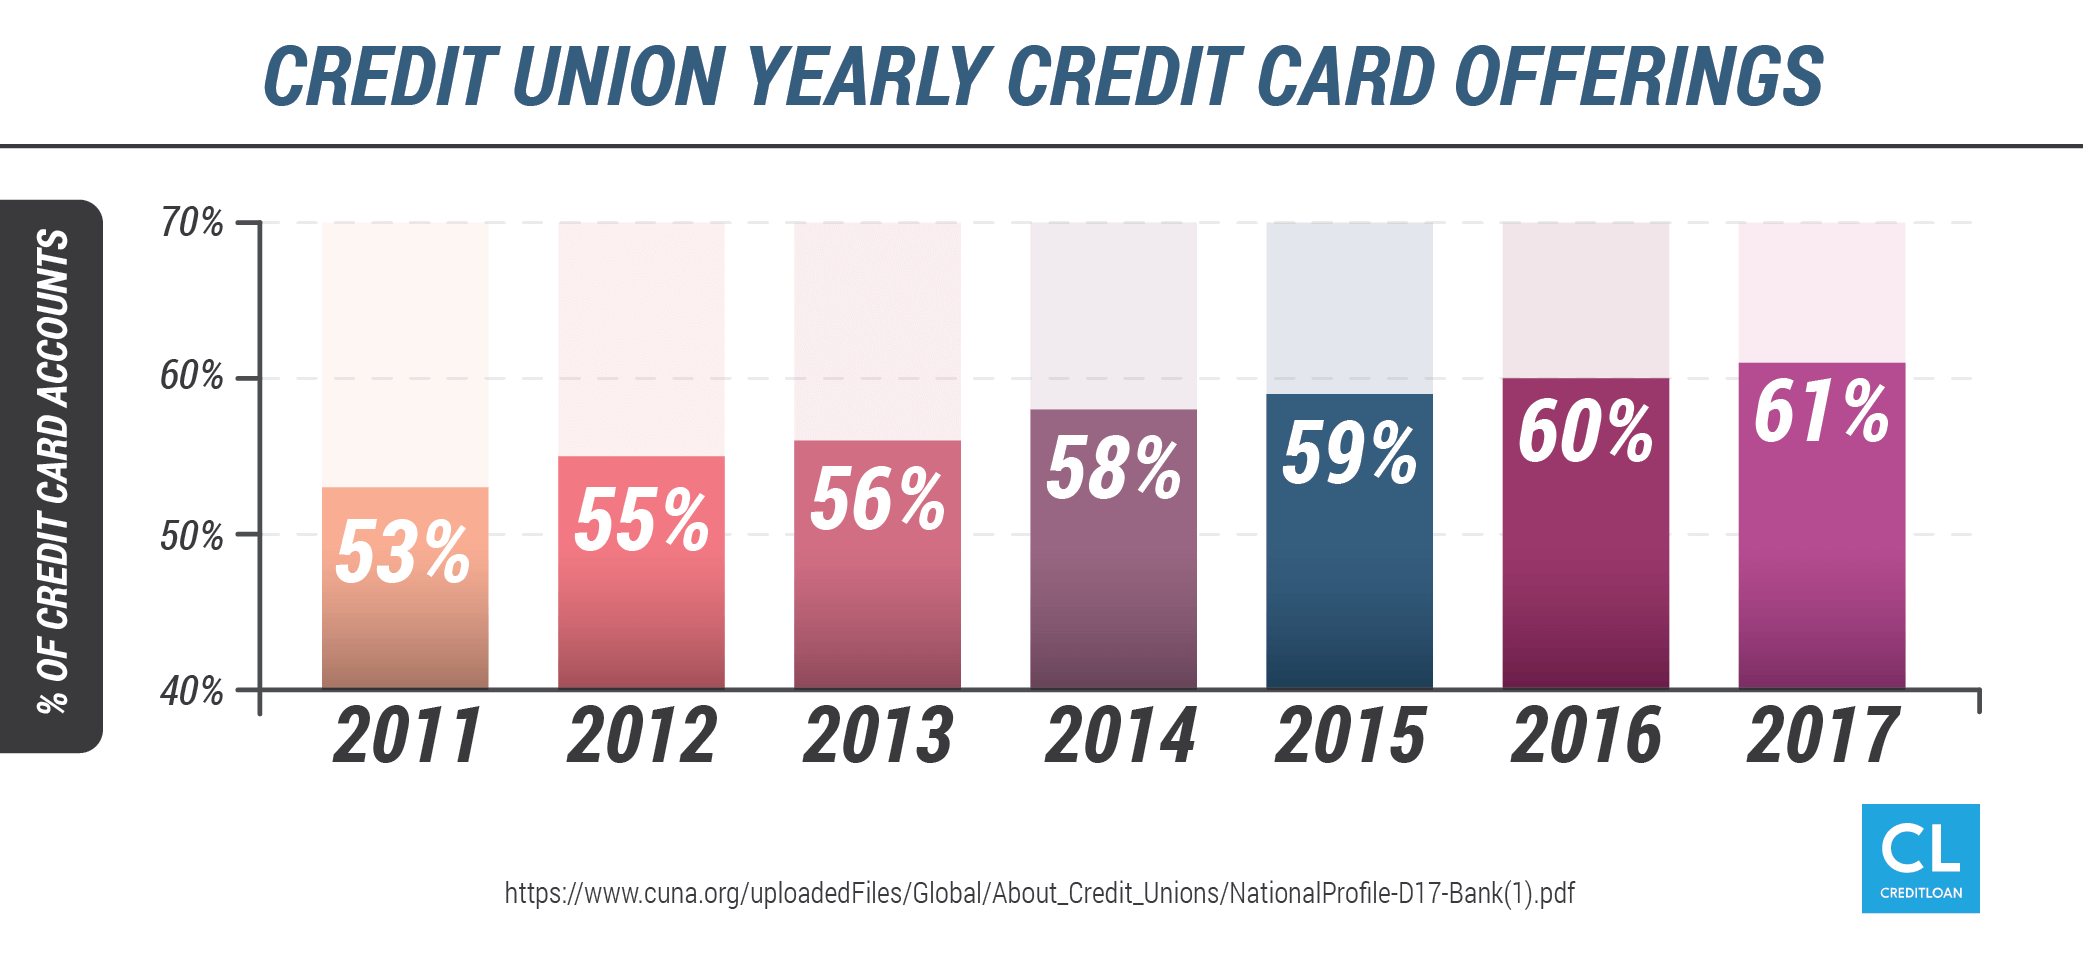 Credit Union Yearly Credit Card Offerings from 2011-2017